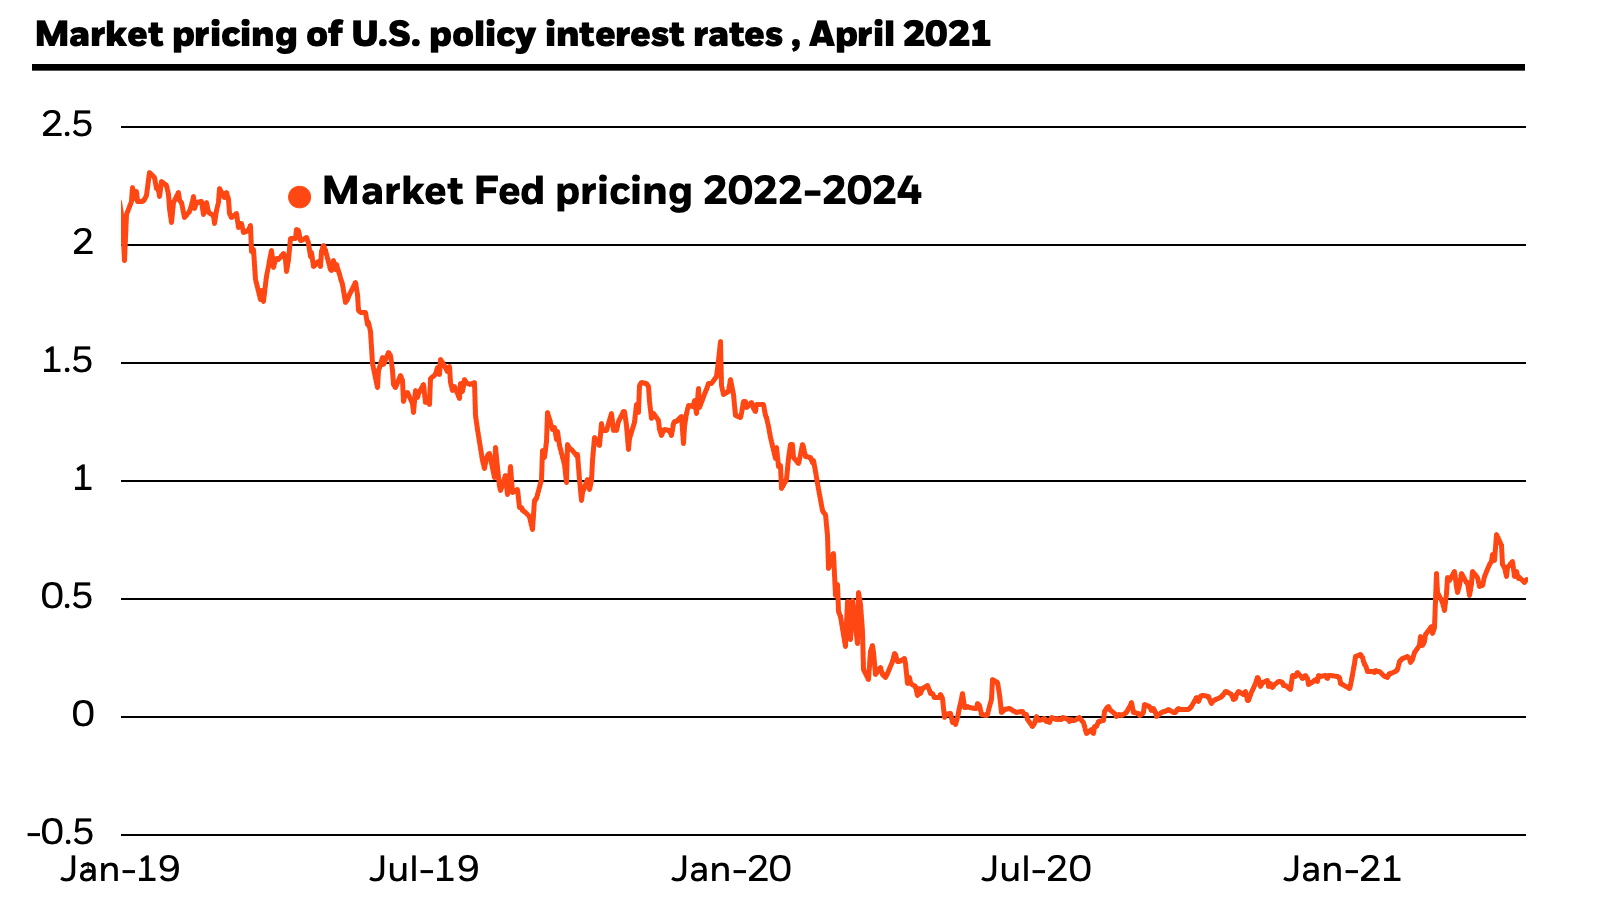 Market pricing of U.S. policy rates: This chart shows that the current market pricing of U.S. policy interest rates is at a little over a half percent, below our 2022-2024 estimate of roughly two percent.